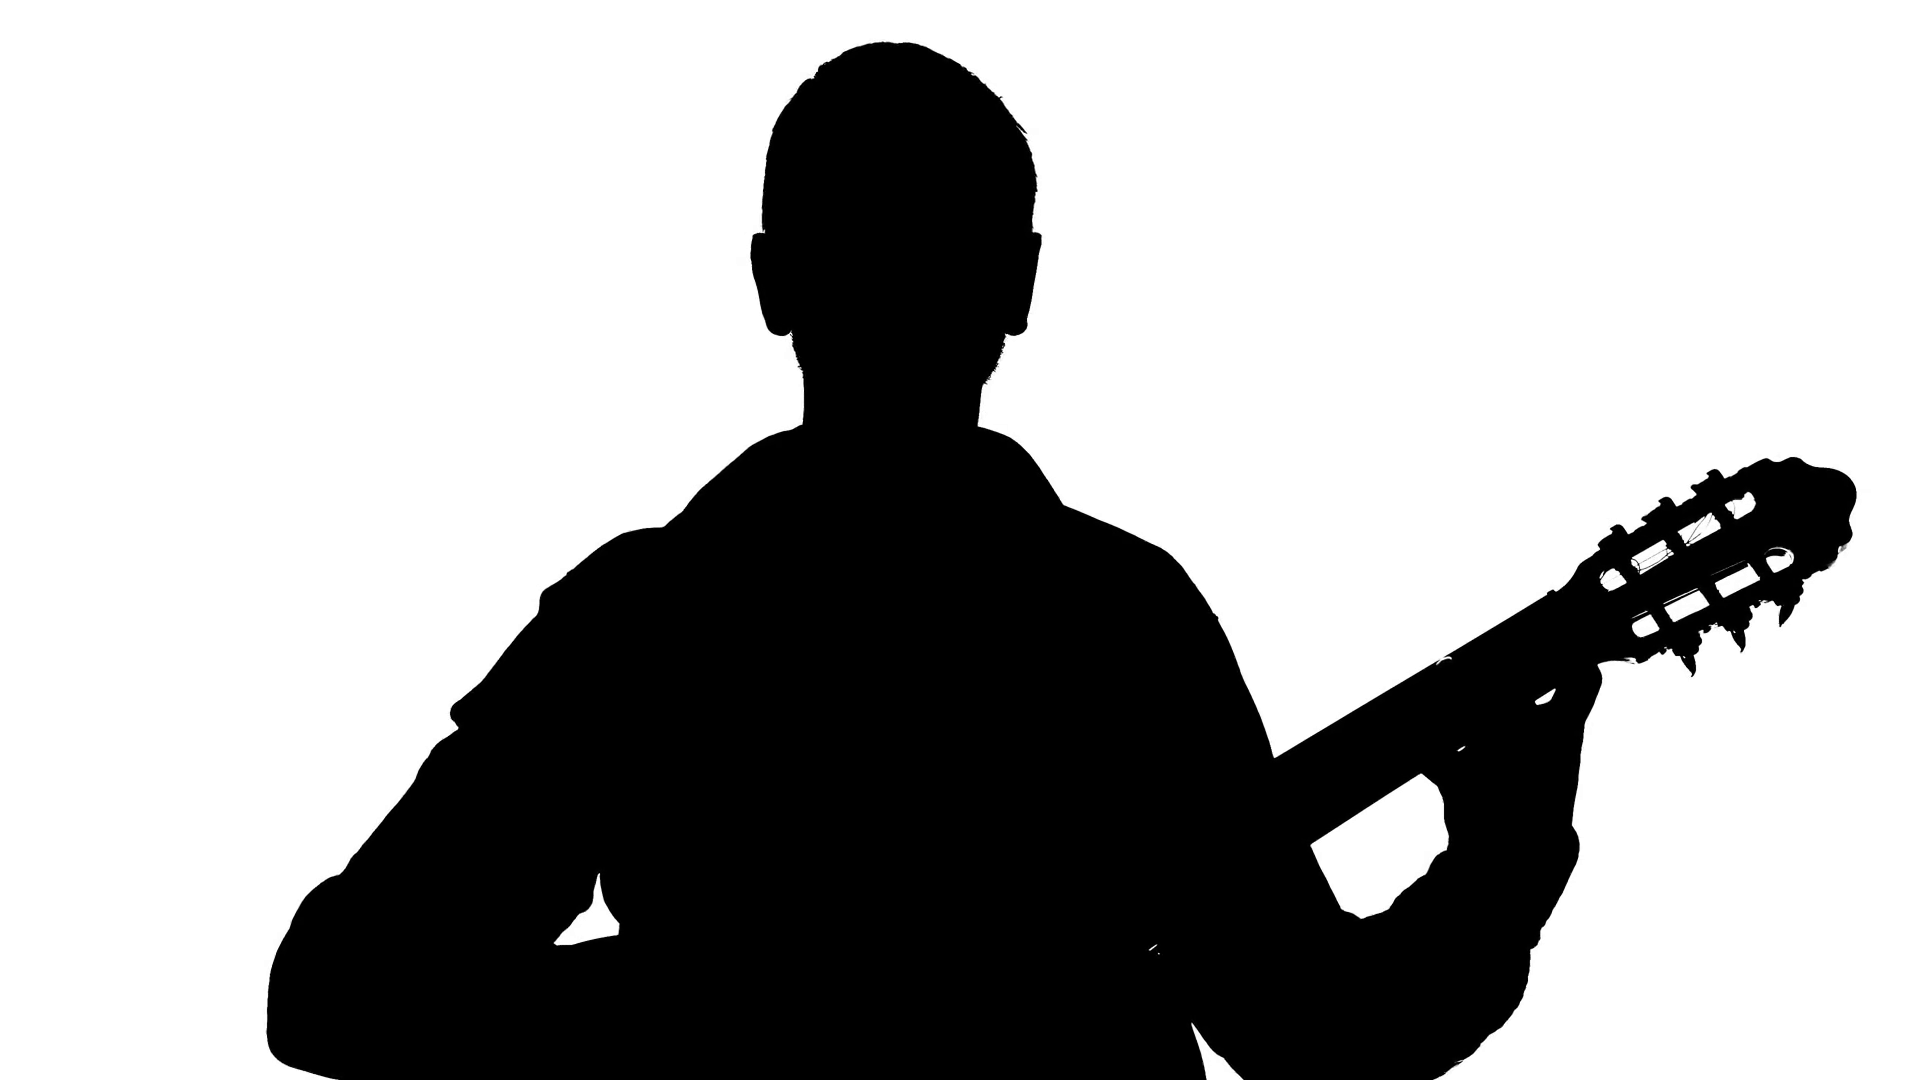 man with guitar silhouette guitar player clipart image silhouette of a man sitting on man silhouette guitar with